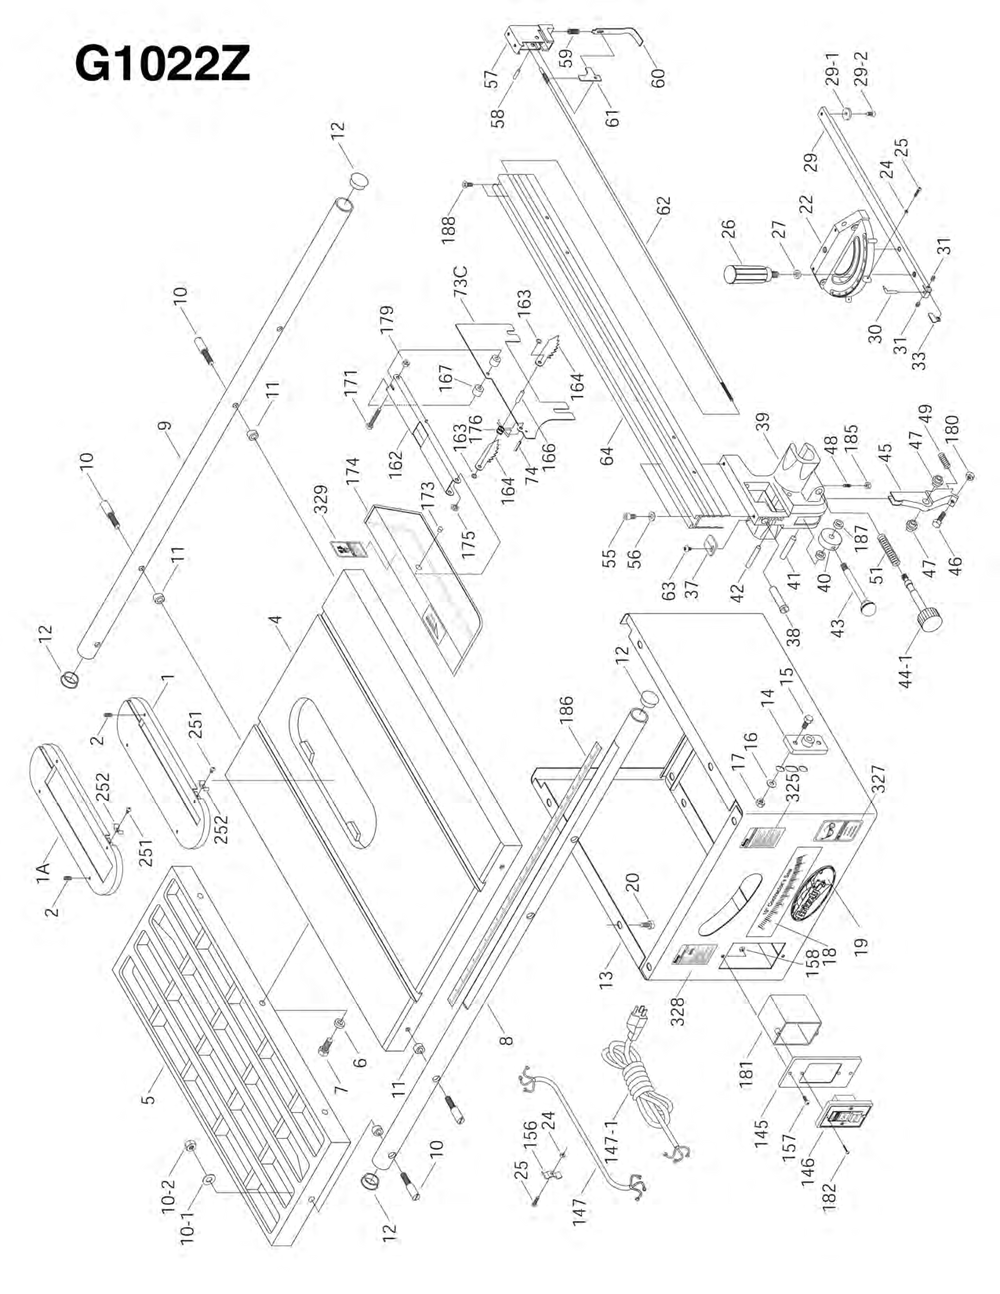 Grizzly Table Saw Wiring Diagram Led Wiring Harness